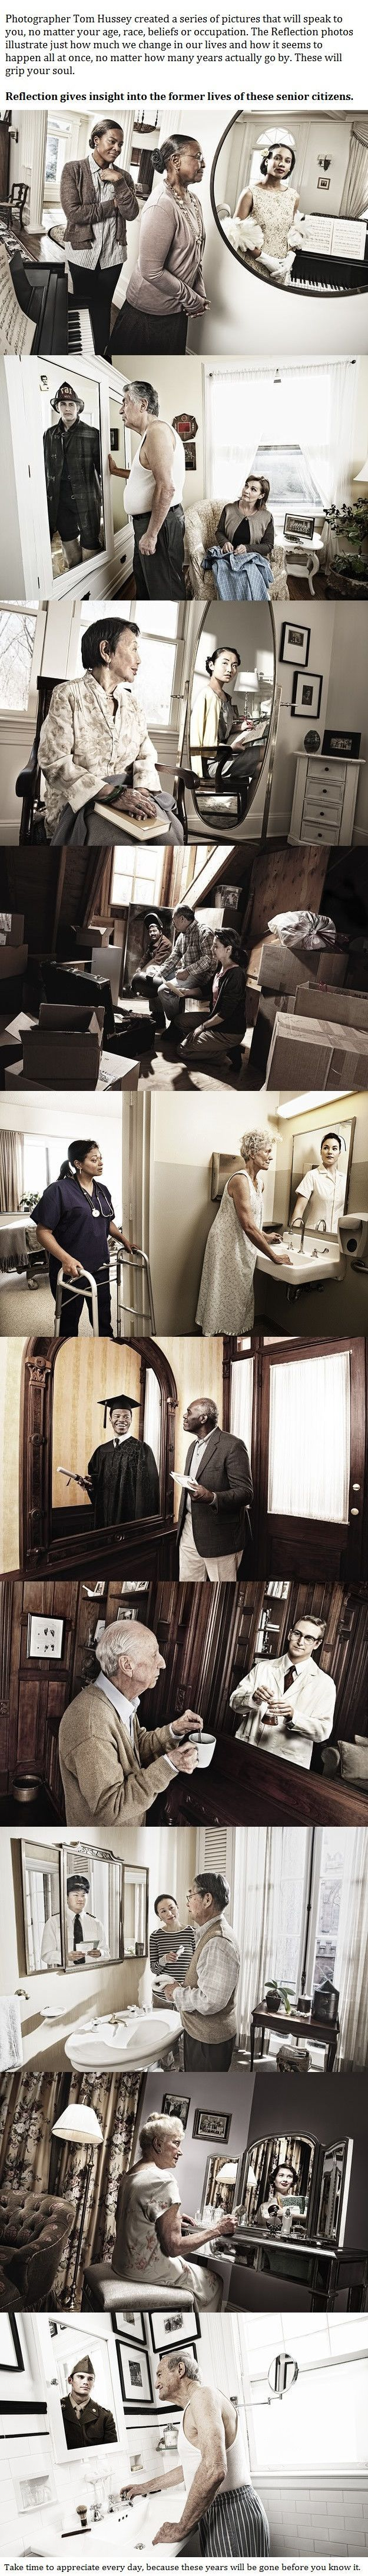 Oh my gosh! I love this so much...everyone has a story especially those who haved lived through challenging times. I wish I could sit and listen to those stories. This is very powerful photography.